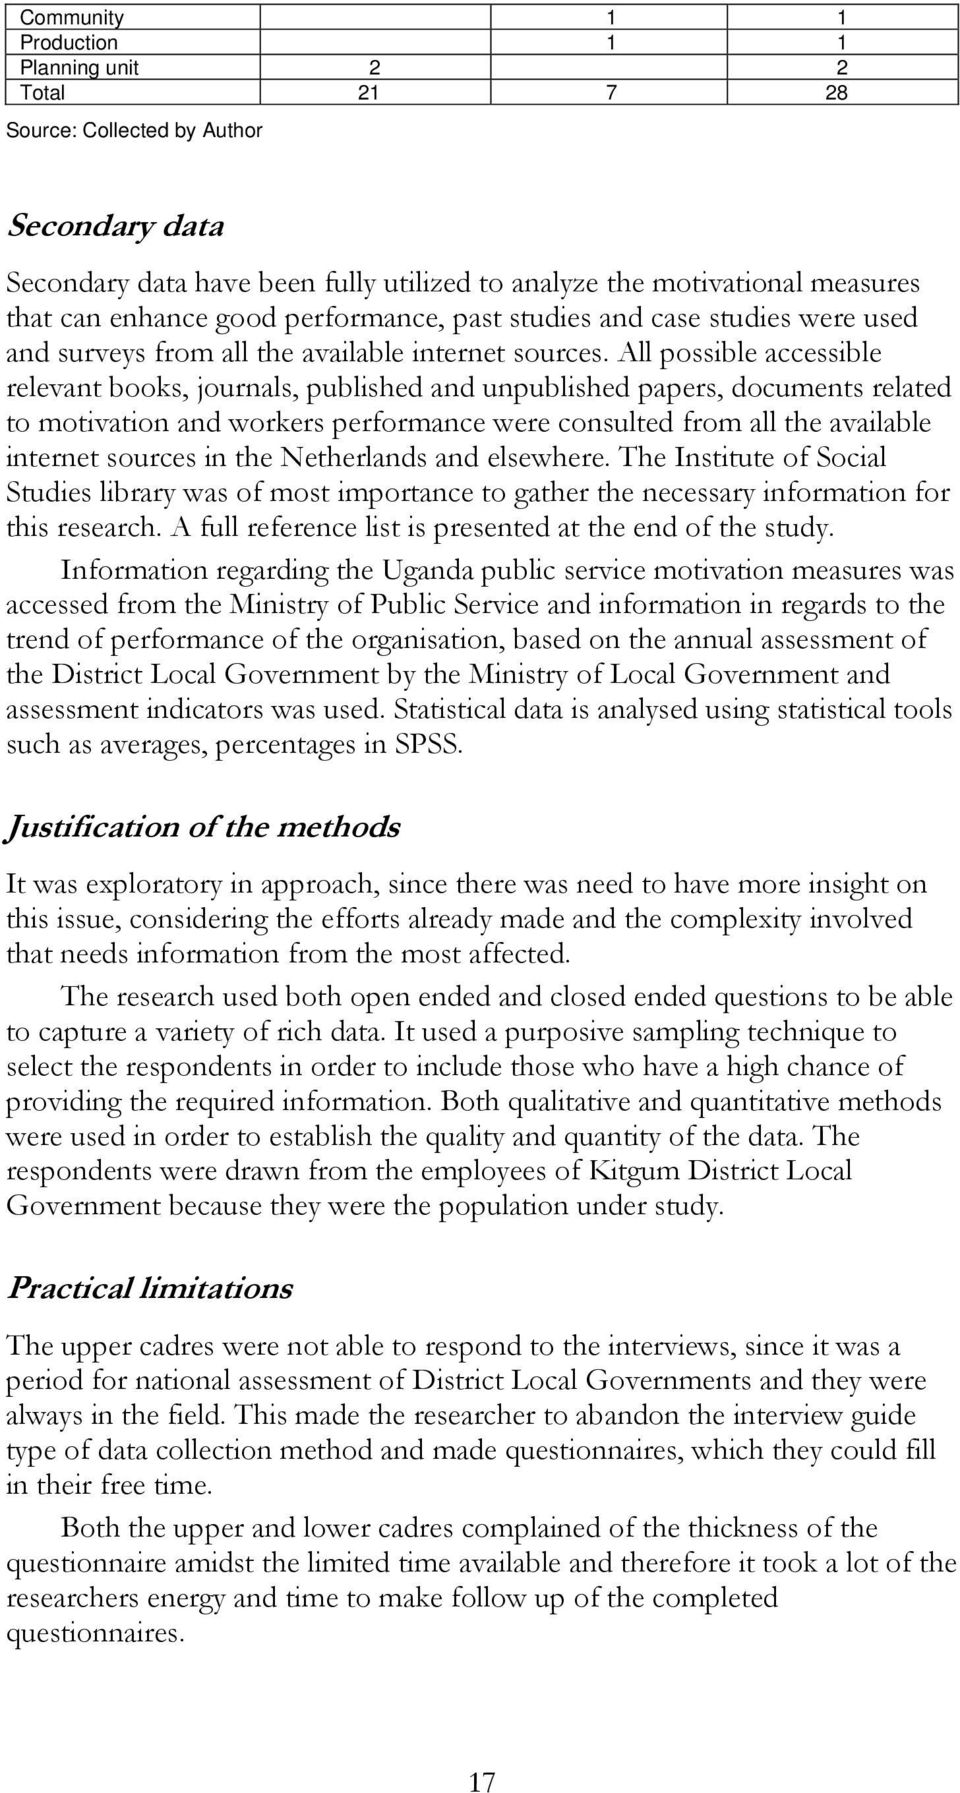 justification of questionnaires method Method of research, it can be argued that quantitive research provides better findings however, qualitative justification for qualitative research in.